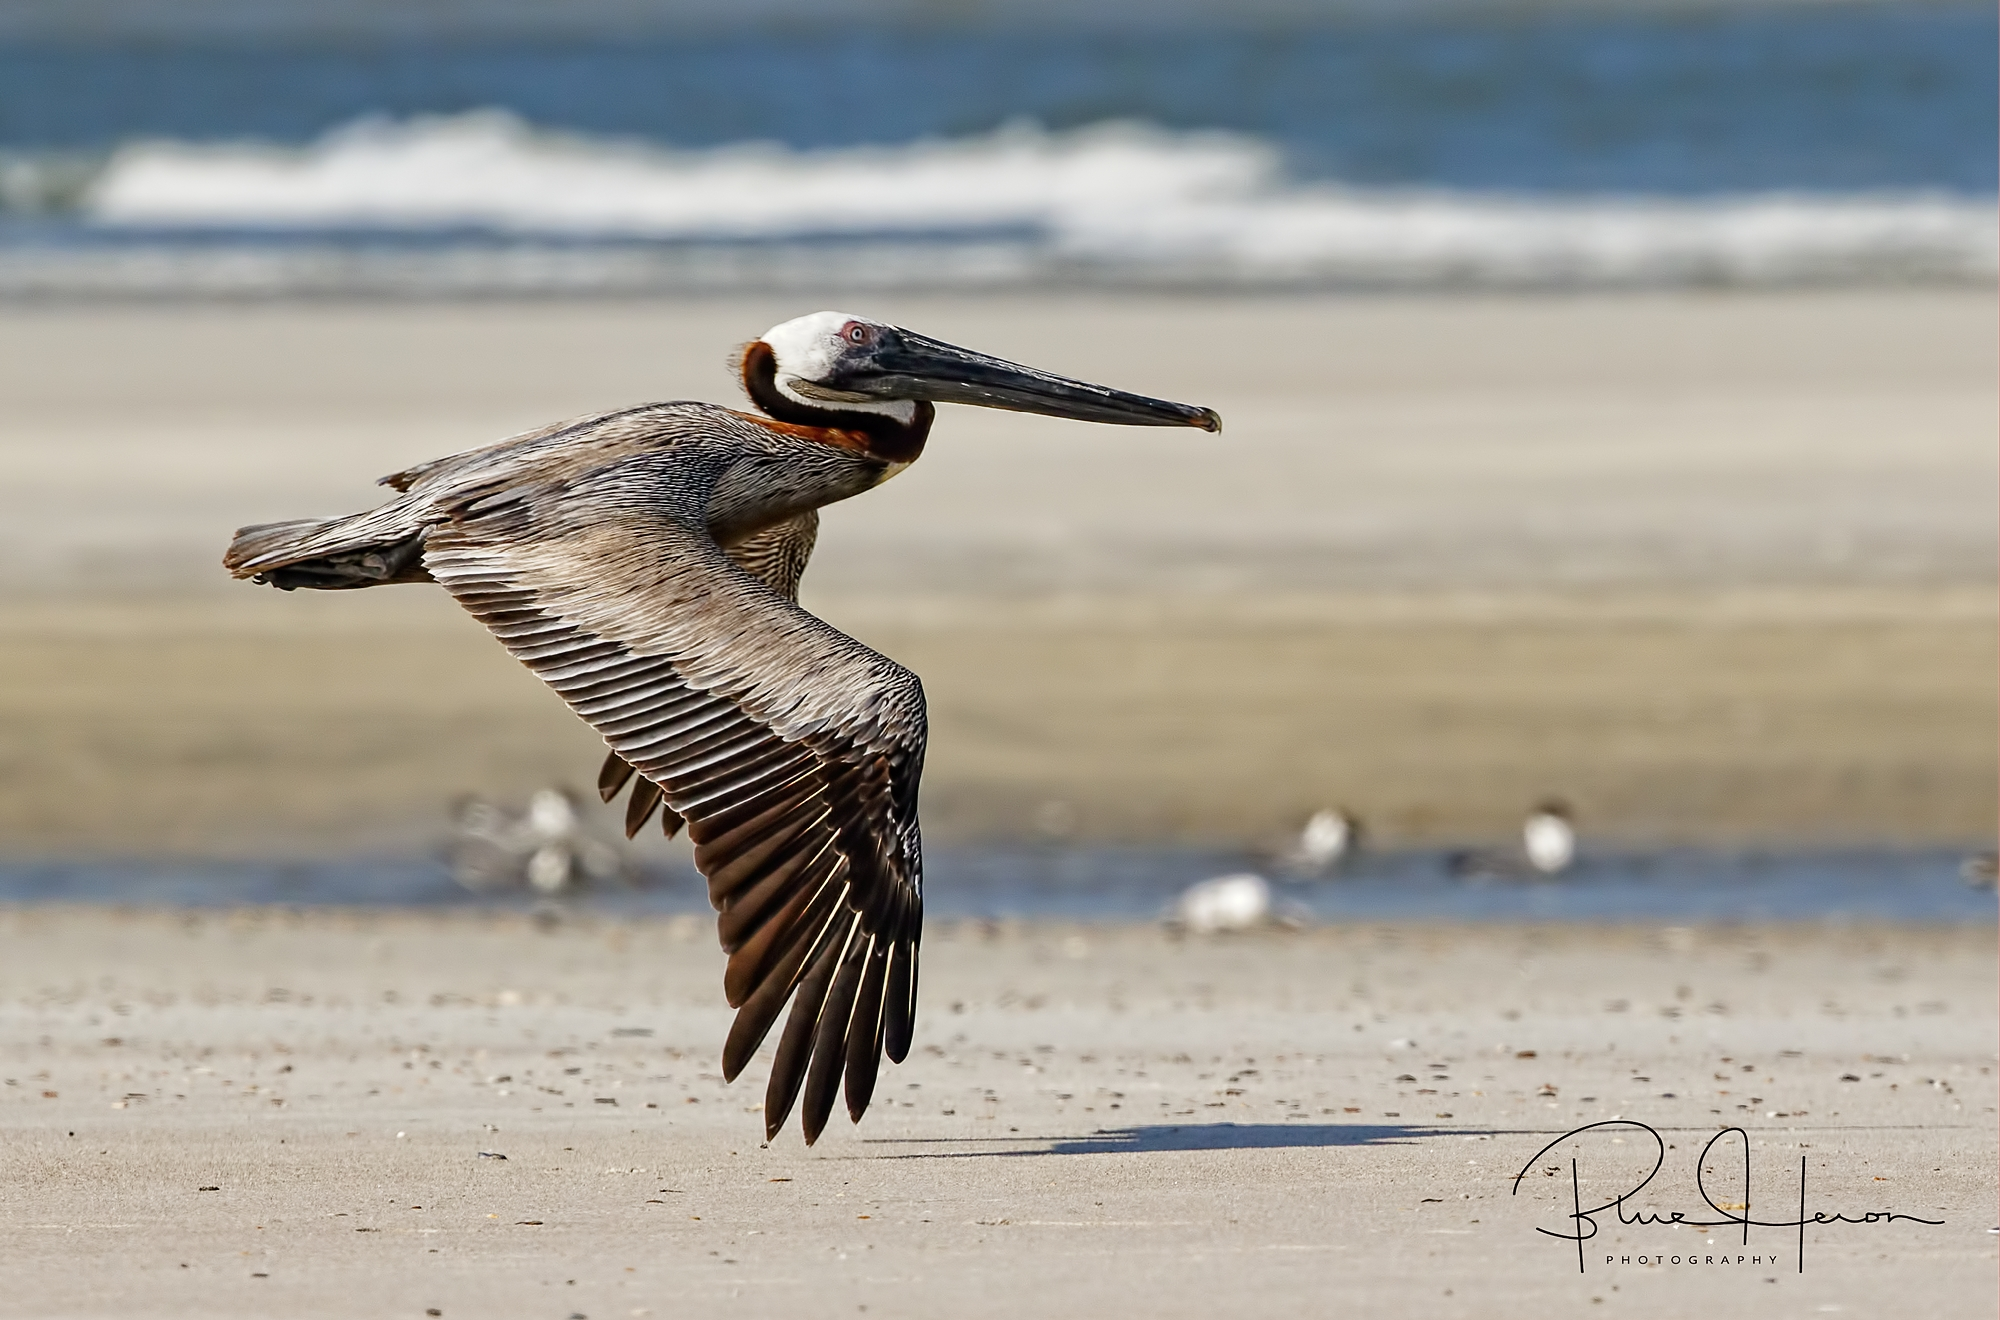 This low flyer continued its glide over the beach, inches from the sand..